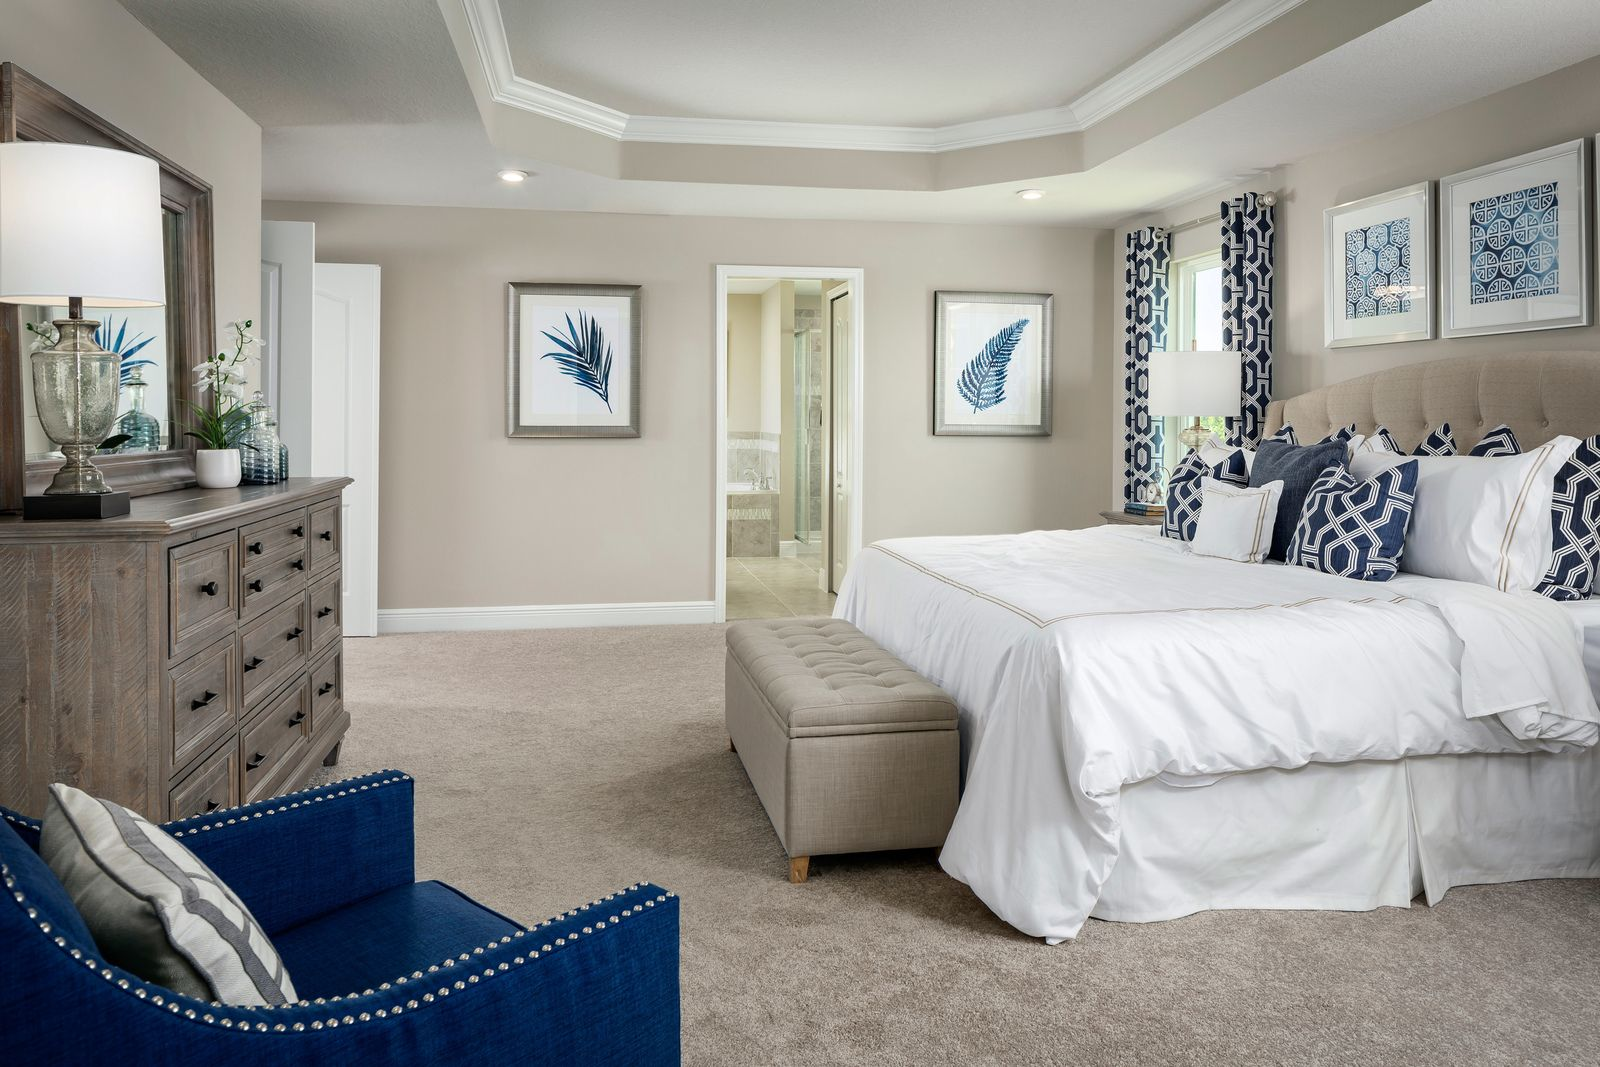 Bedroom featured in the Estero Bay By Ryan Homes in Tampa-St. Petersburg, FL